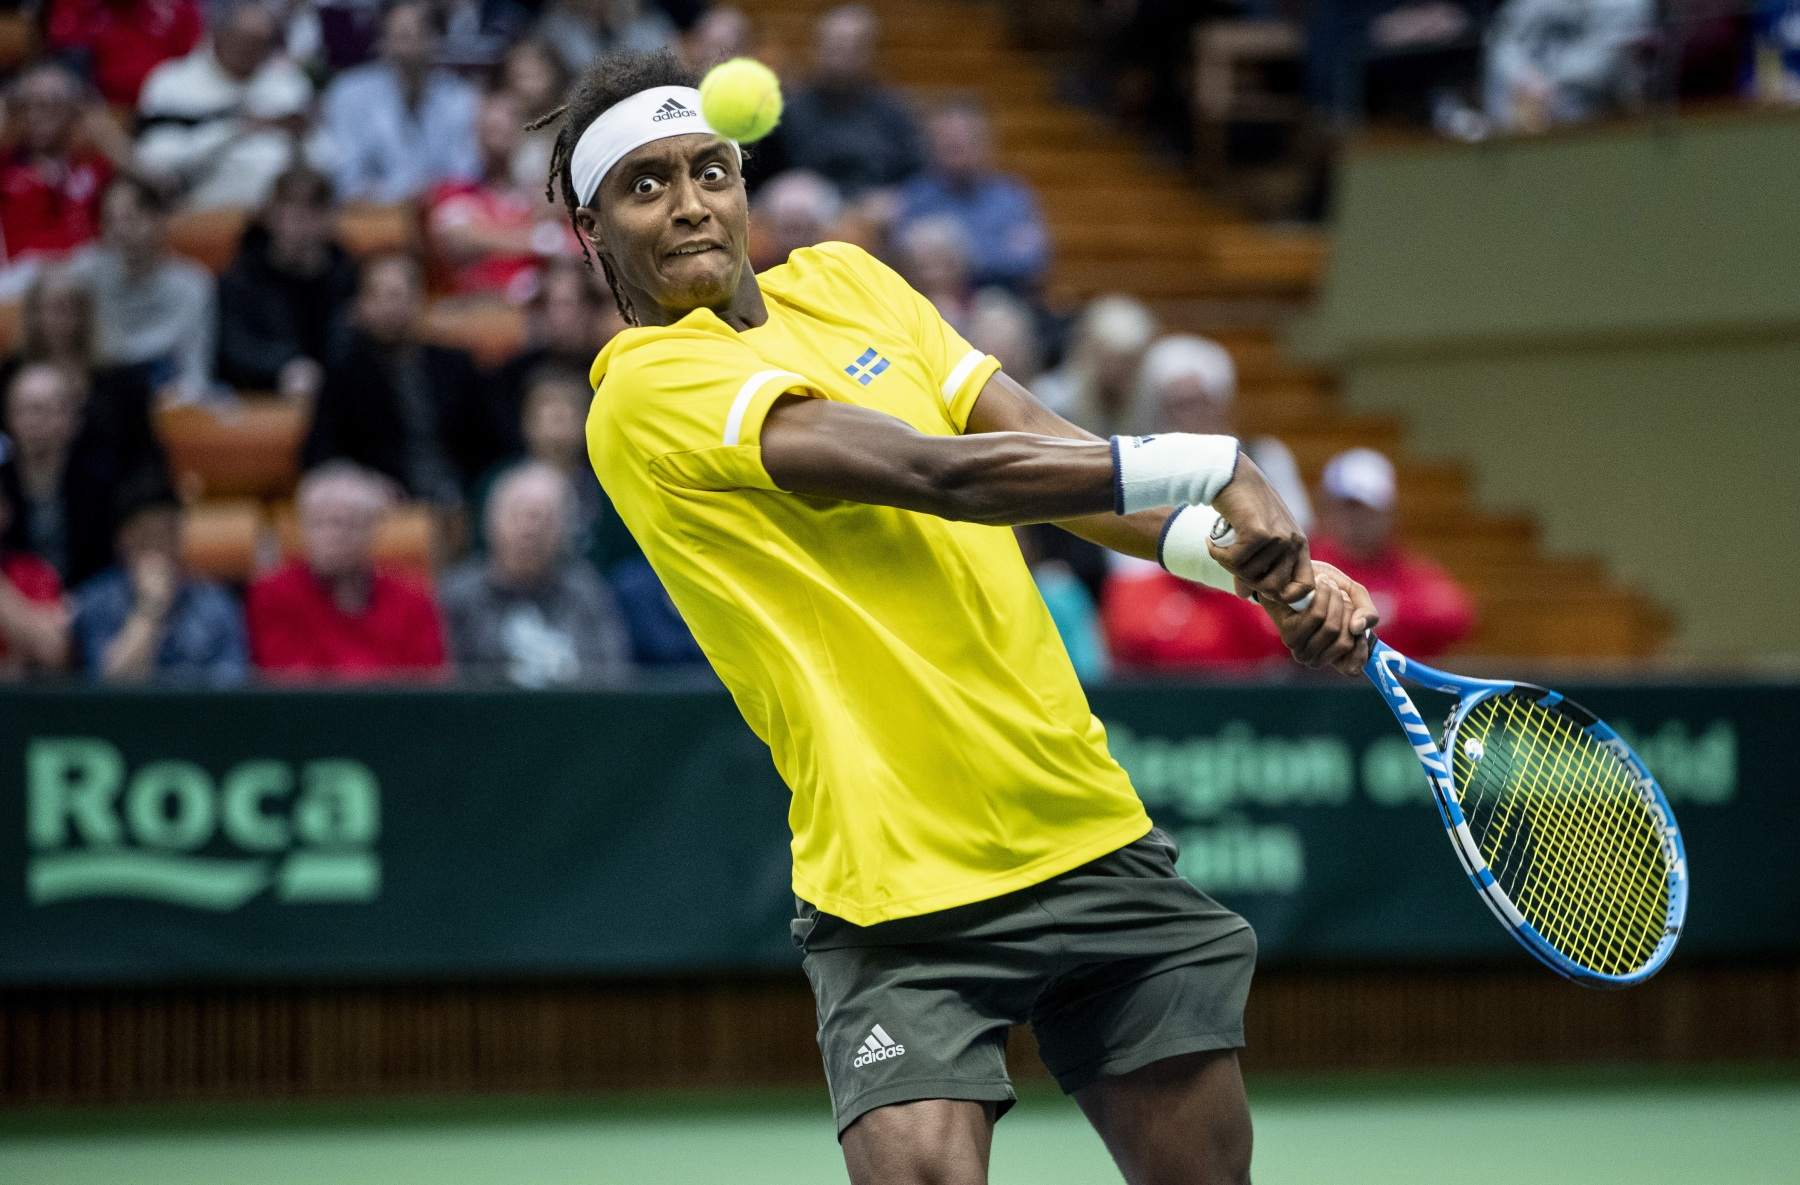 Mikael Ymer during Davis Cup 2020